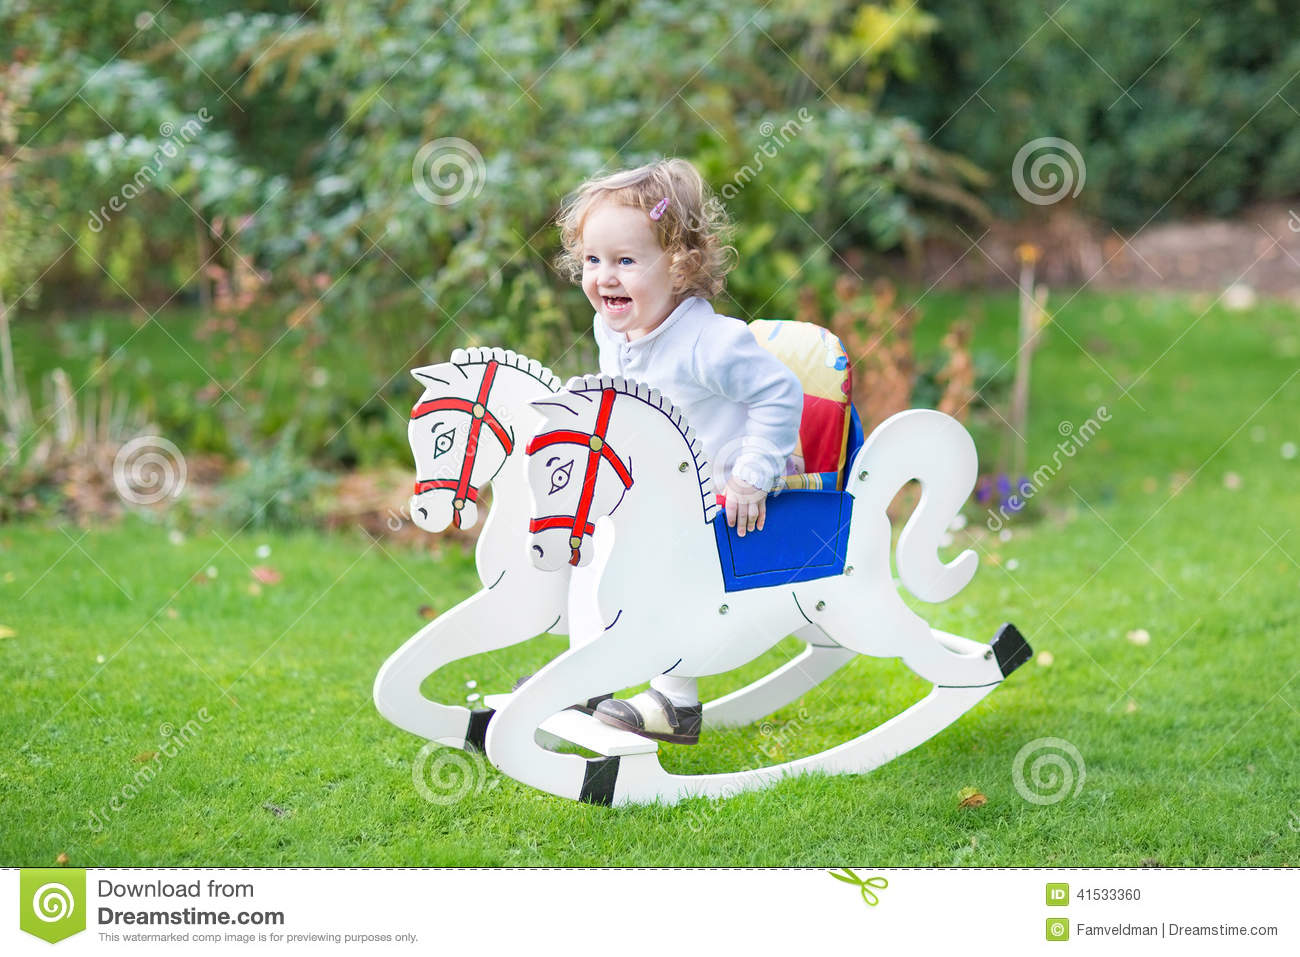 Cute happy girl on rocking horse in the garden